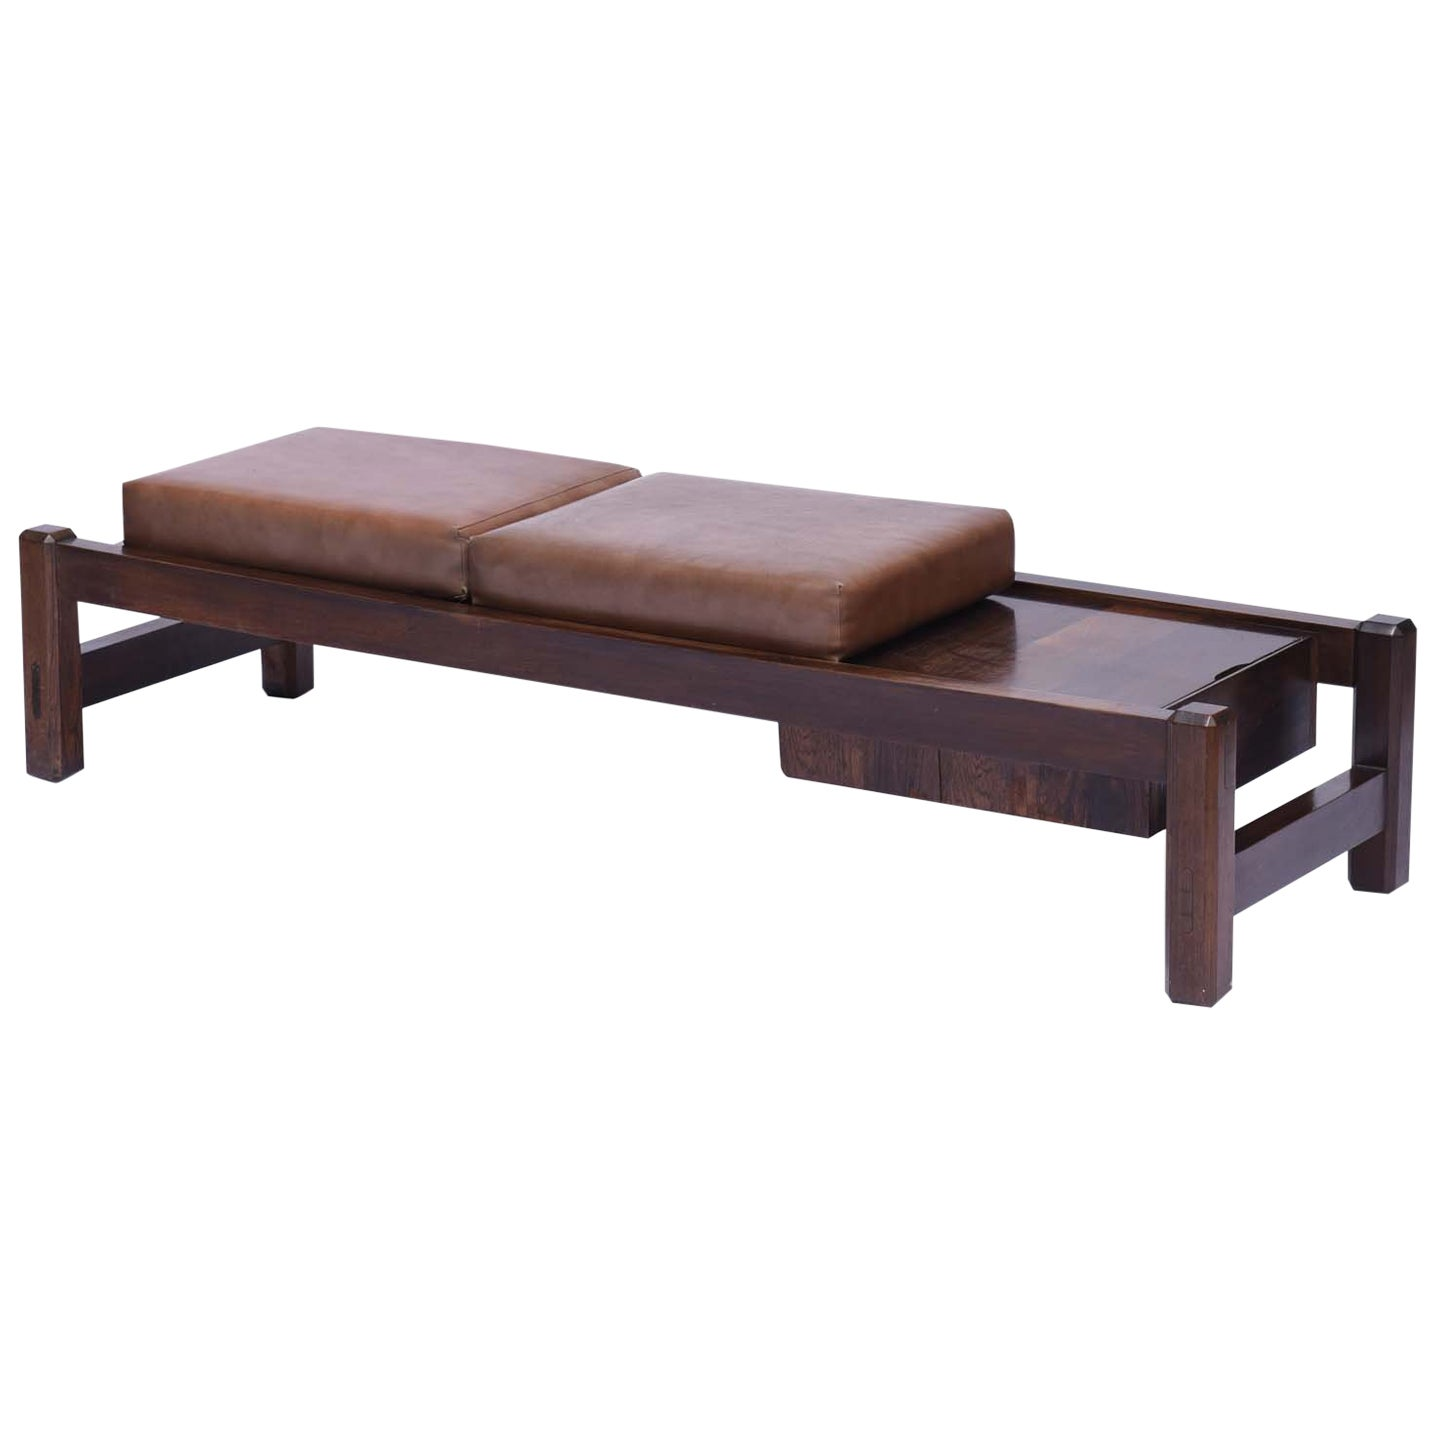 Midcentury Brazilian Bench with Rosewood Structure and a Drawer, 1960s